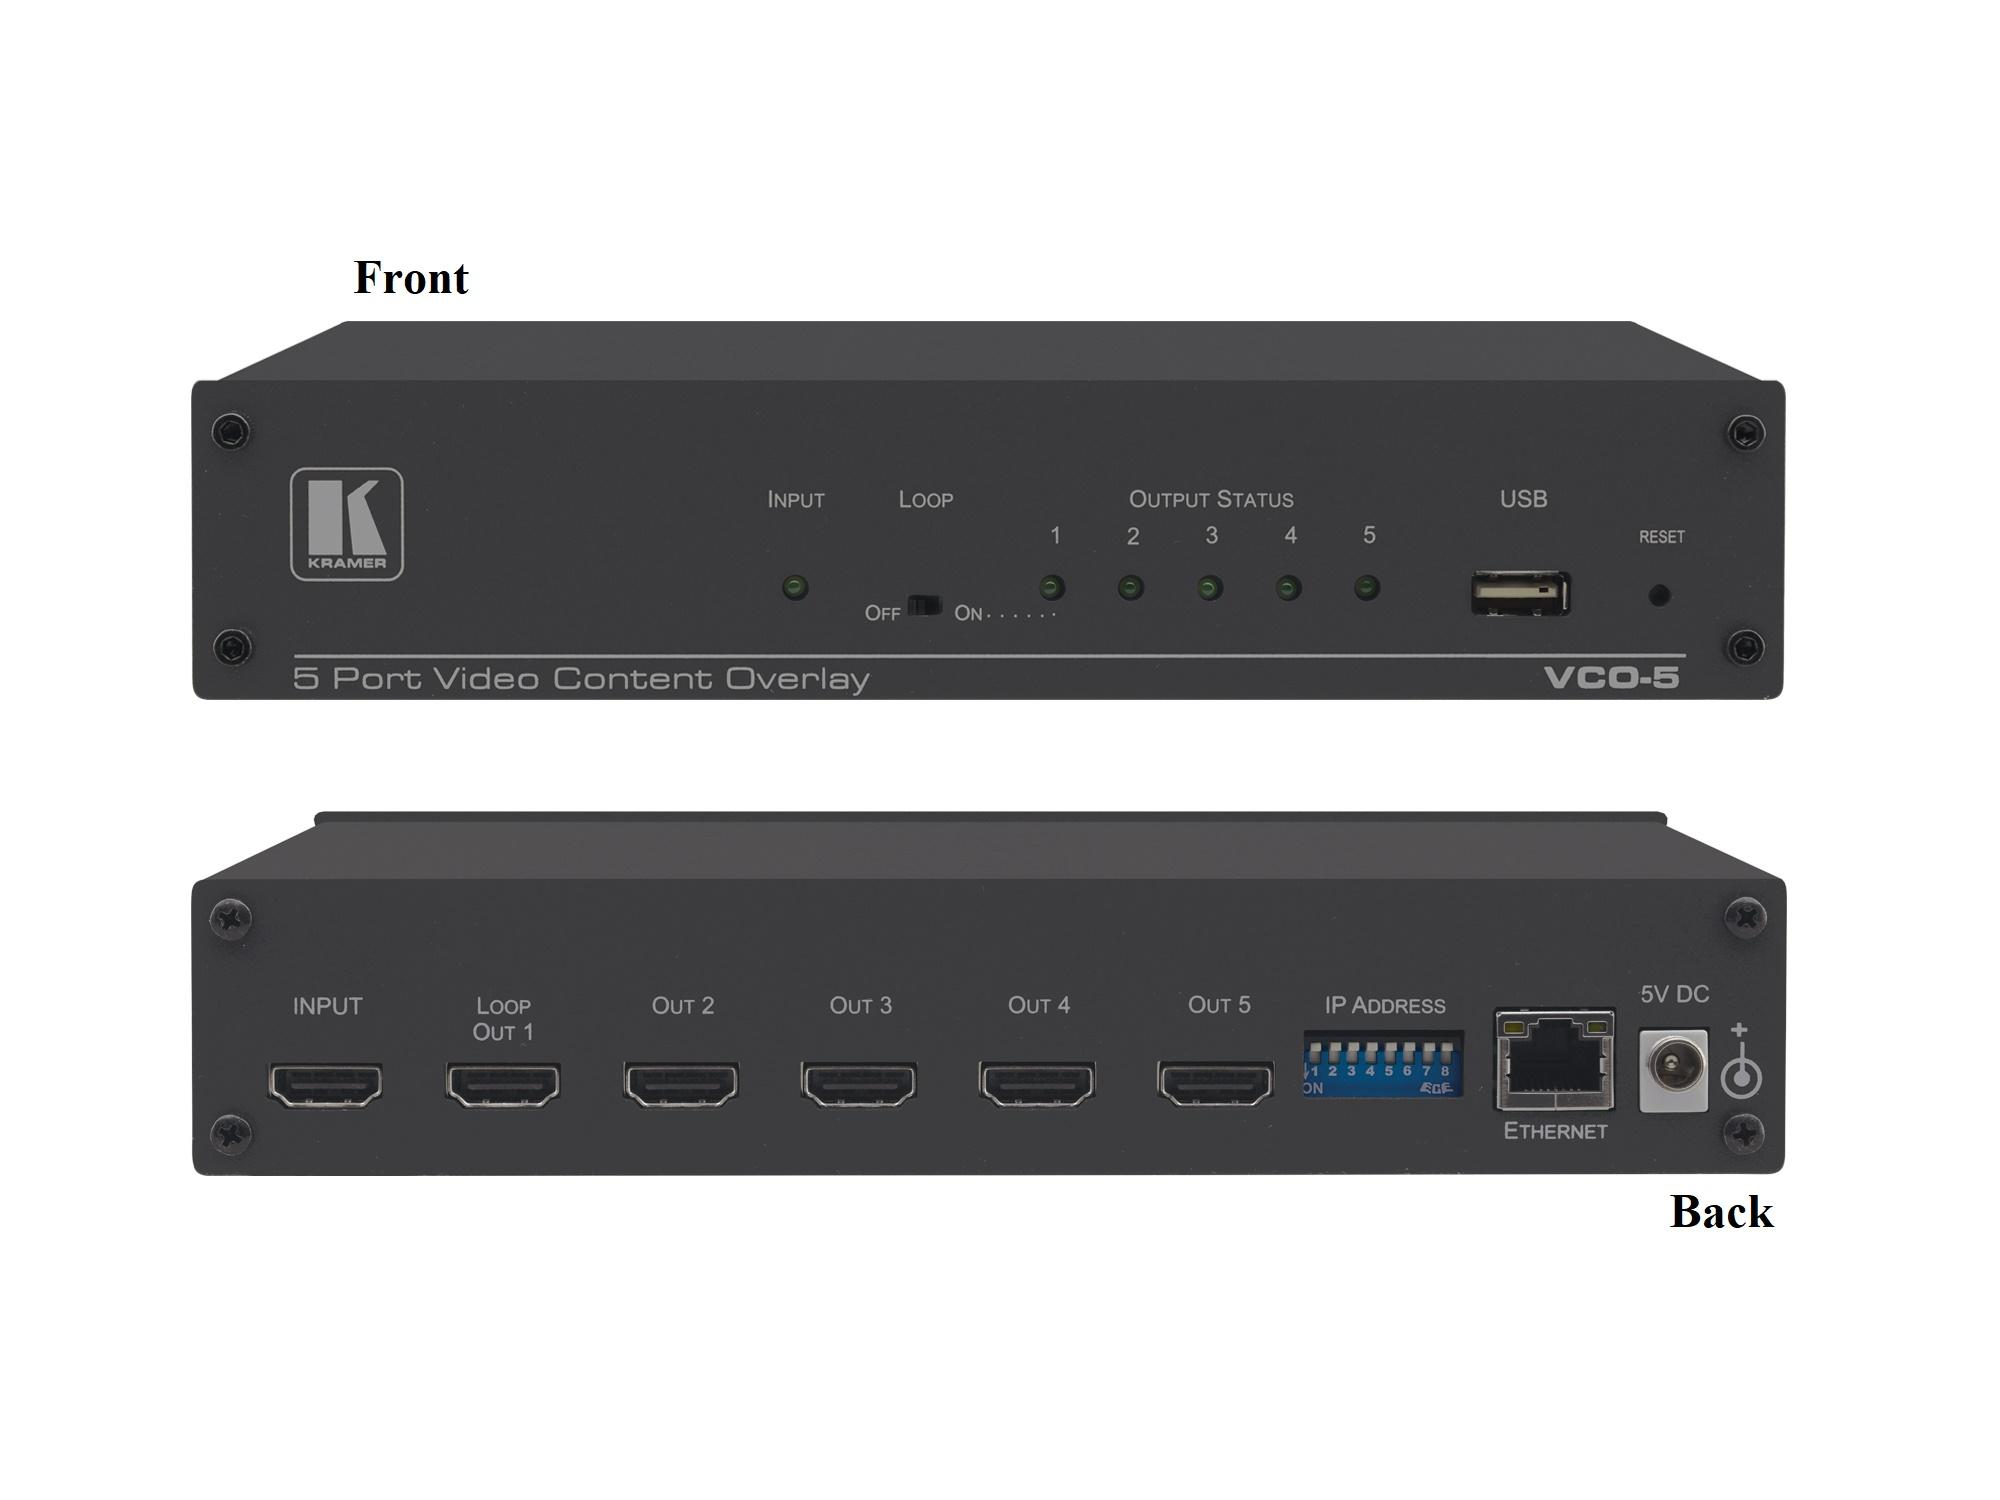 Kramer VCO-5UHD 5-Port 4K60 4x2x0 HDMI Video Content Overlay Solution